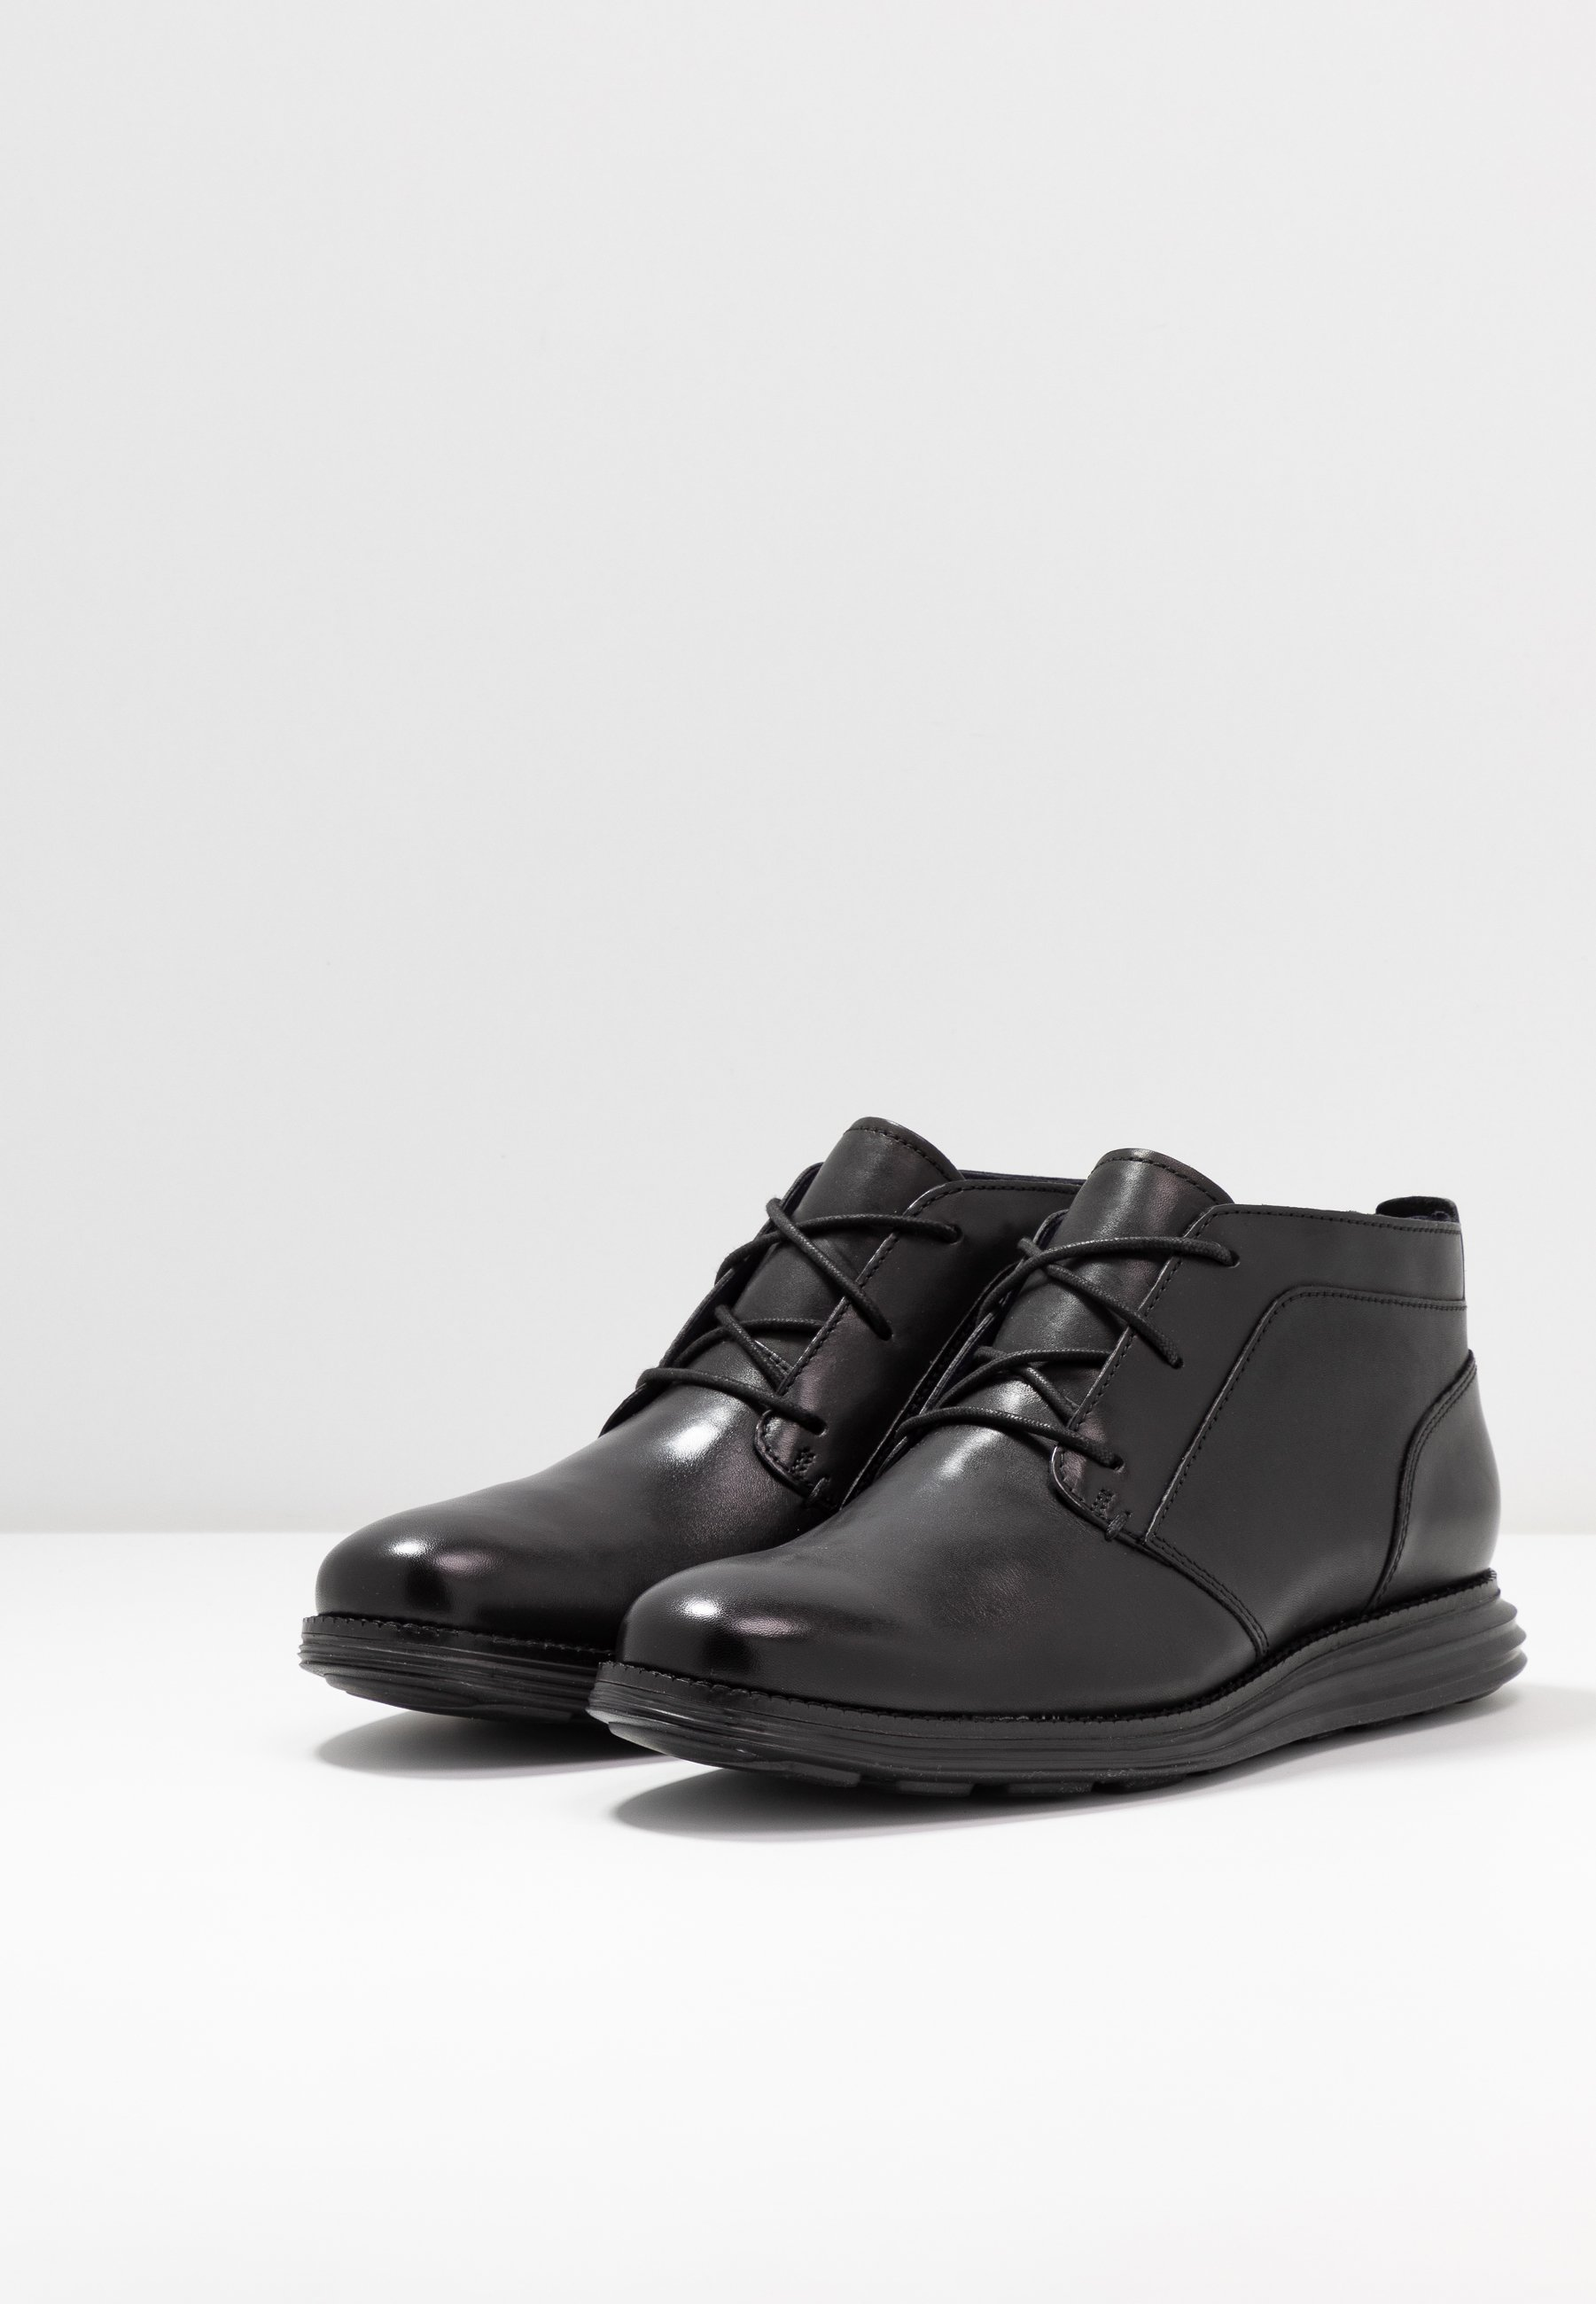 Discount Cheapest Cole Haan ORIGINAL GRAND CHUKKA - Lace-up ankle boots - black   men's shoes 2020 ryqIx